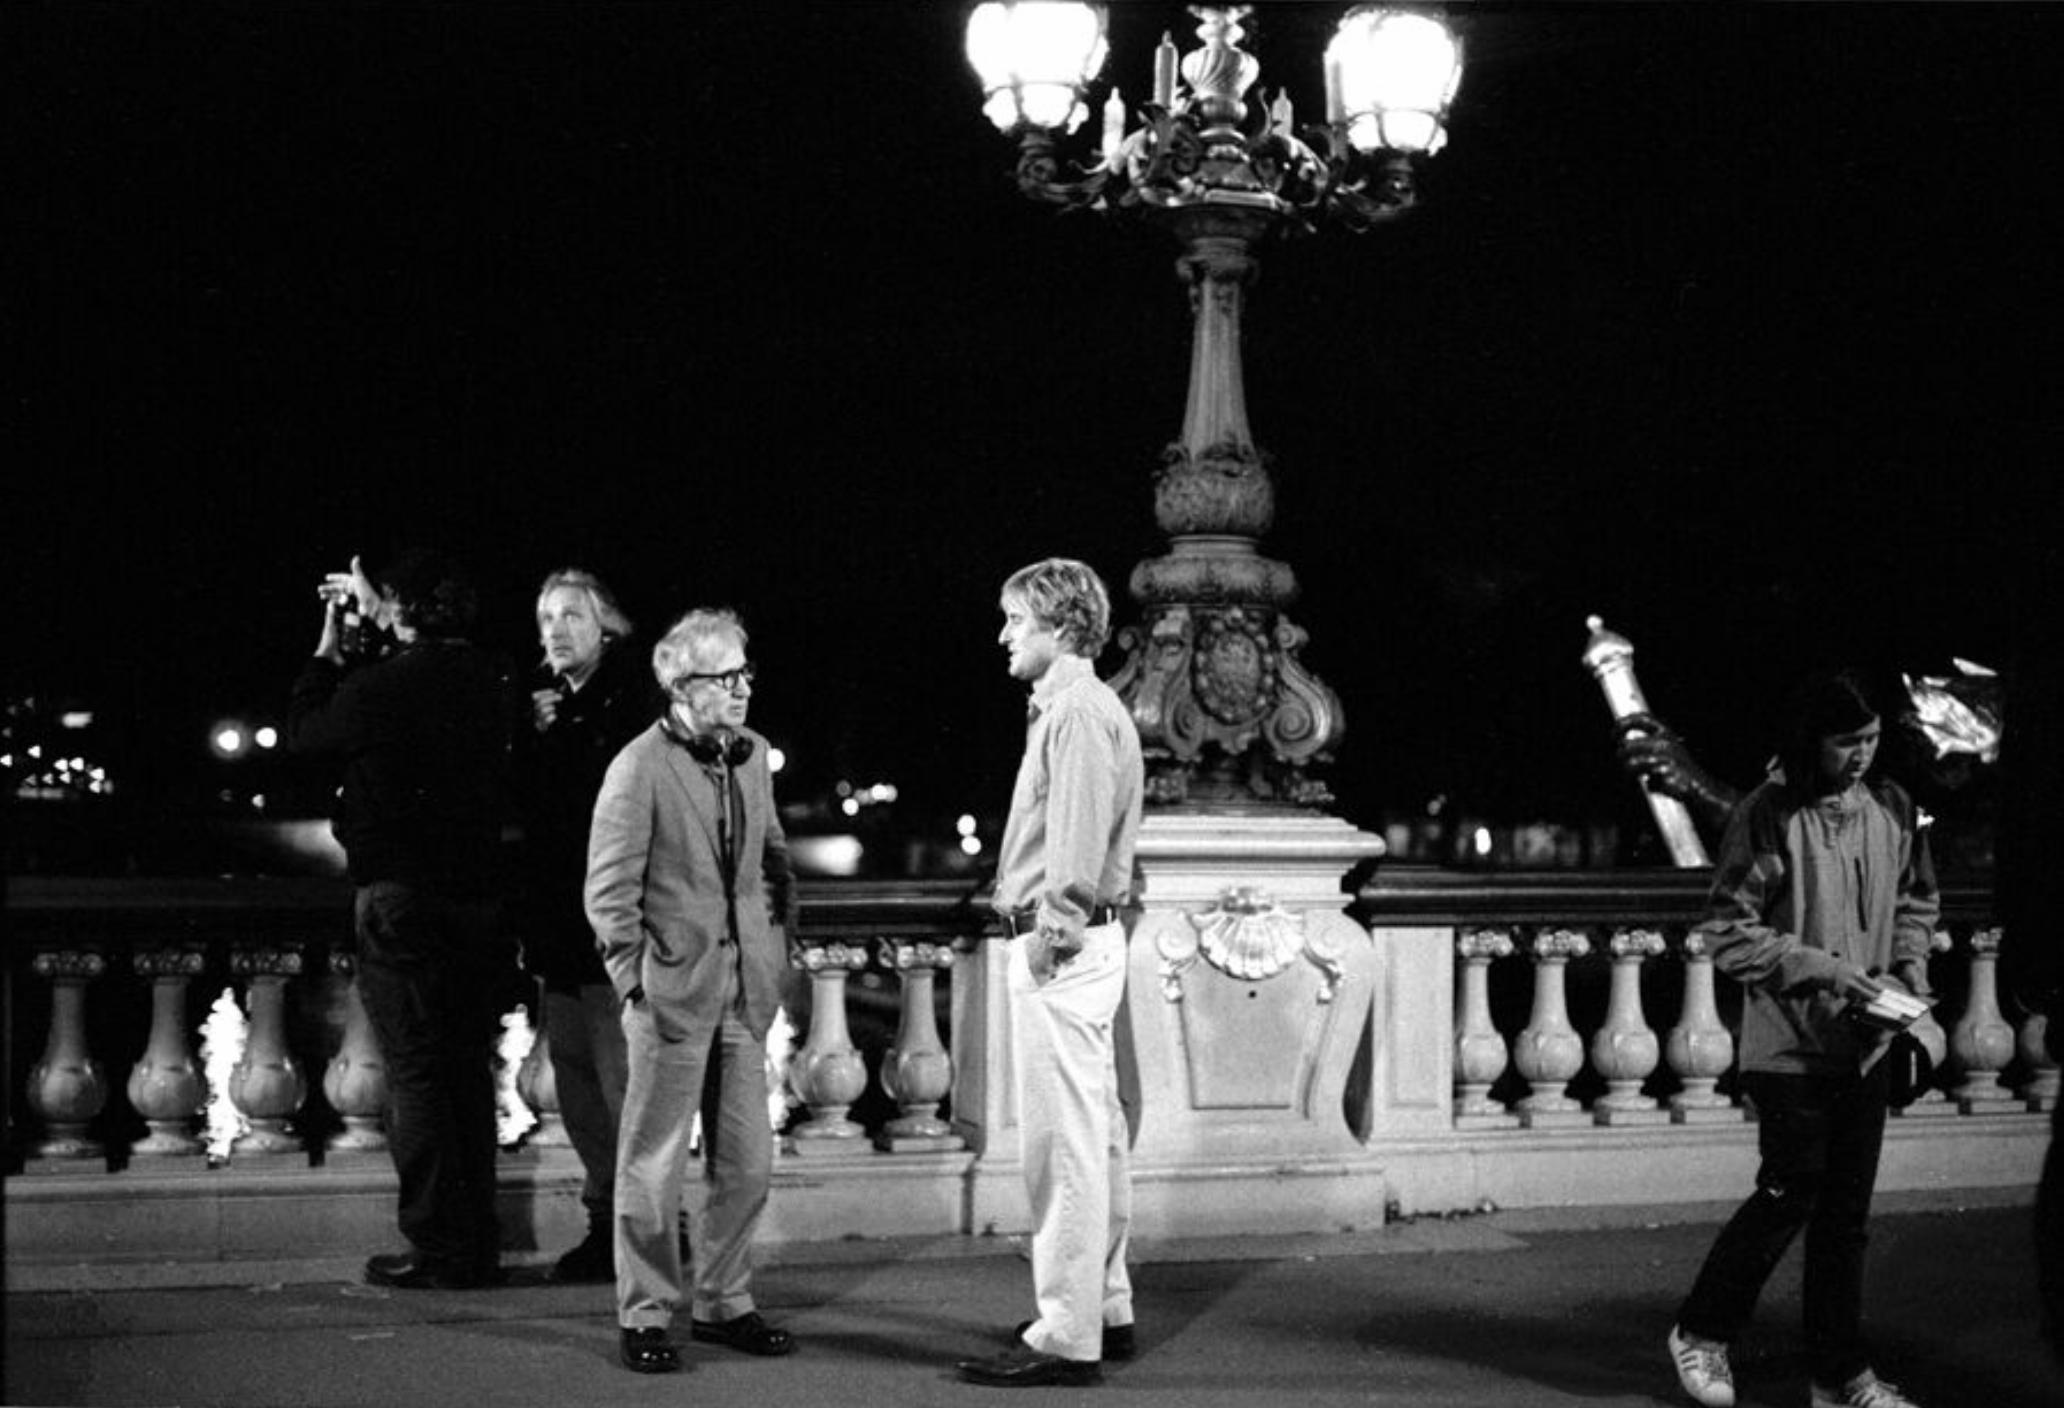 Woody Allen and Owen Wilson, on set in Midnight in Paris, Paris, France, 2010